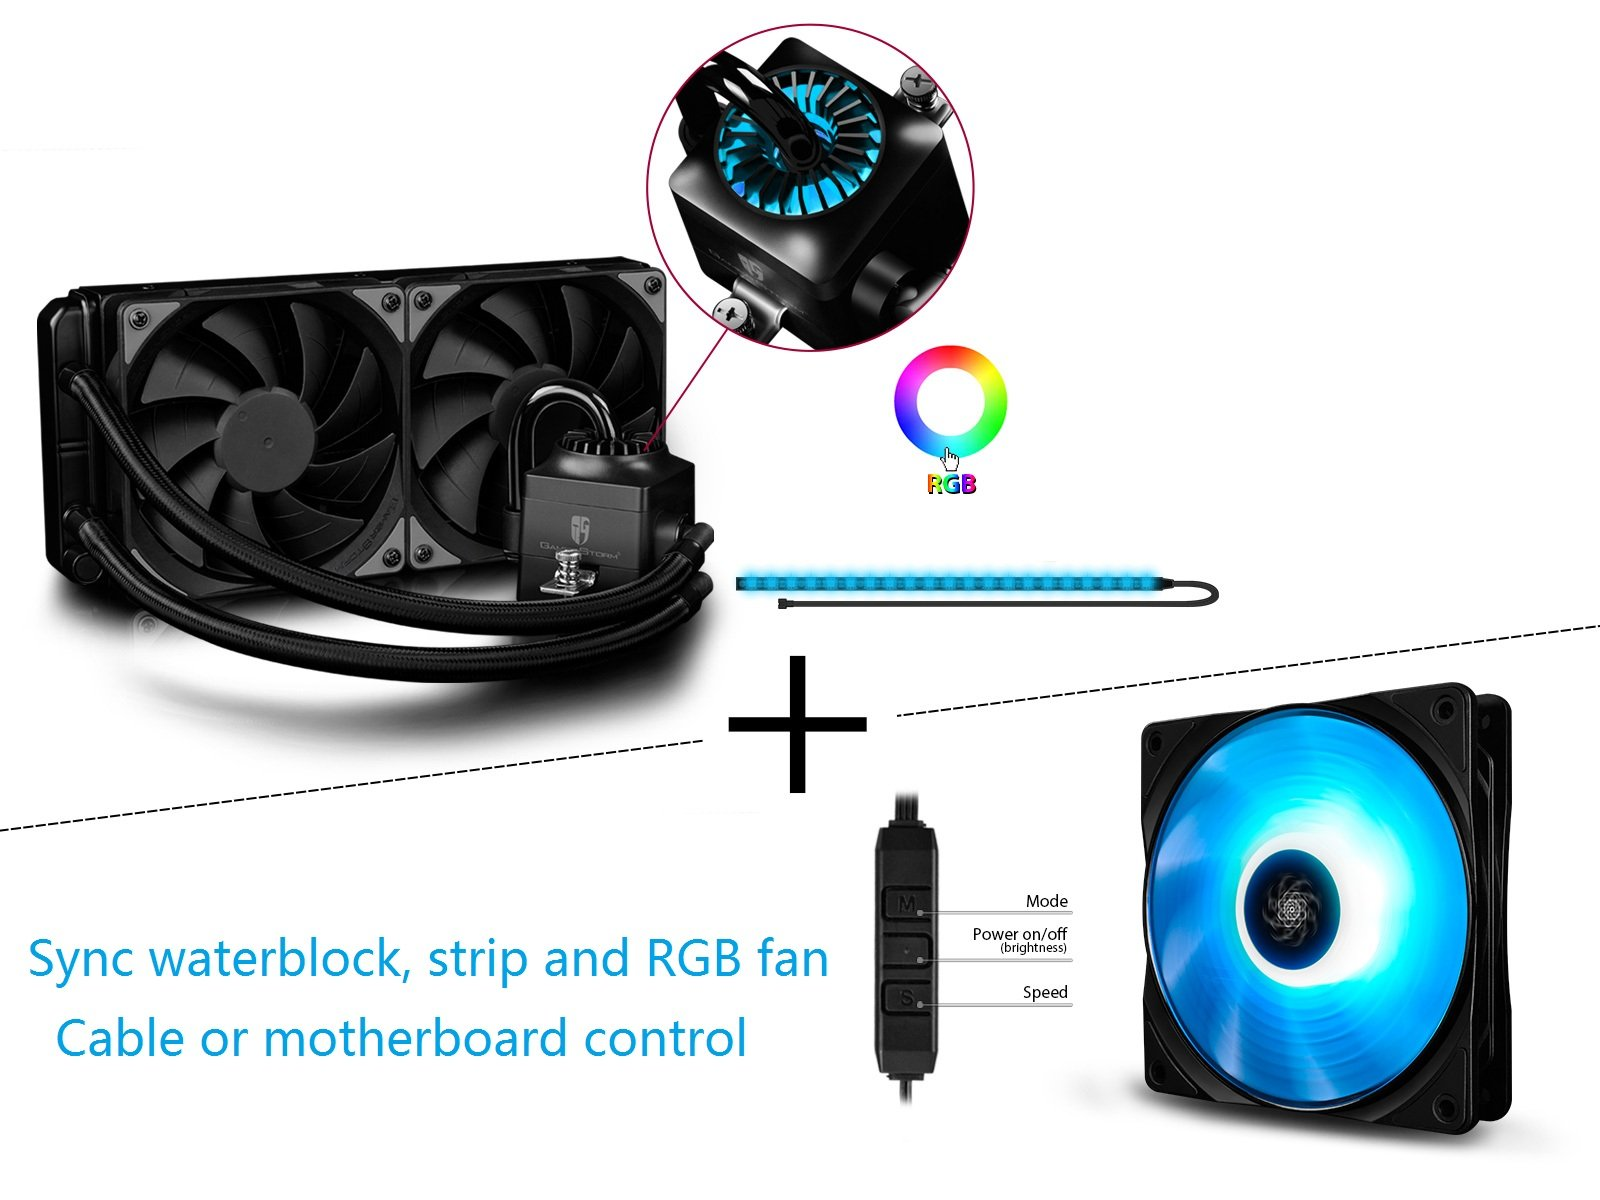 BUNDLING SALE of DEEPCOOL CAPTAIN 240EX RGB and RF120, RGB of Waterblock, Strip and RF120 Fan are Synchronous with Cable Controller or Motherboard Control, AM4 Compatible, 3-year Warranty